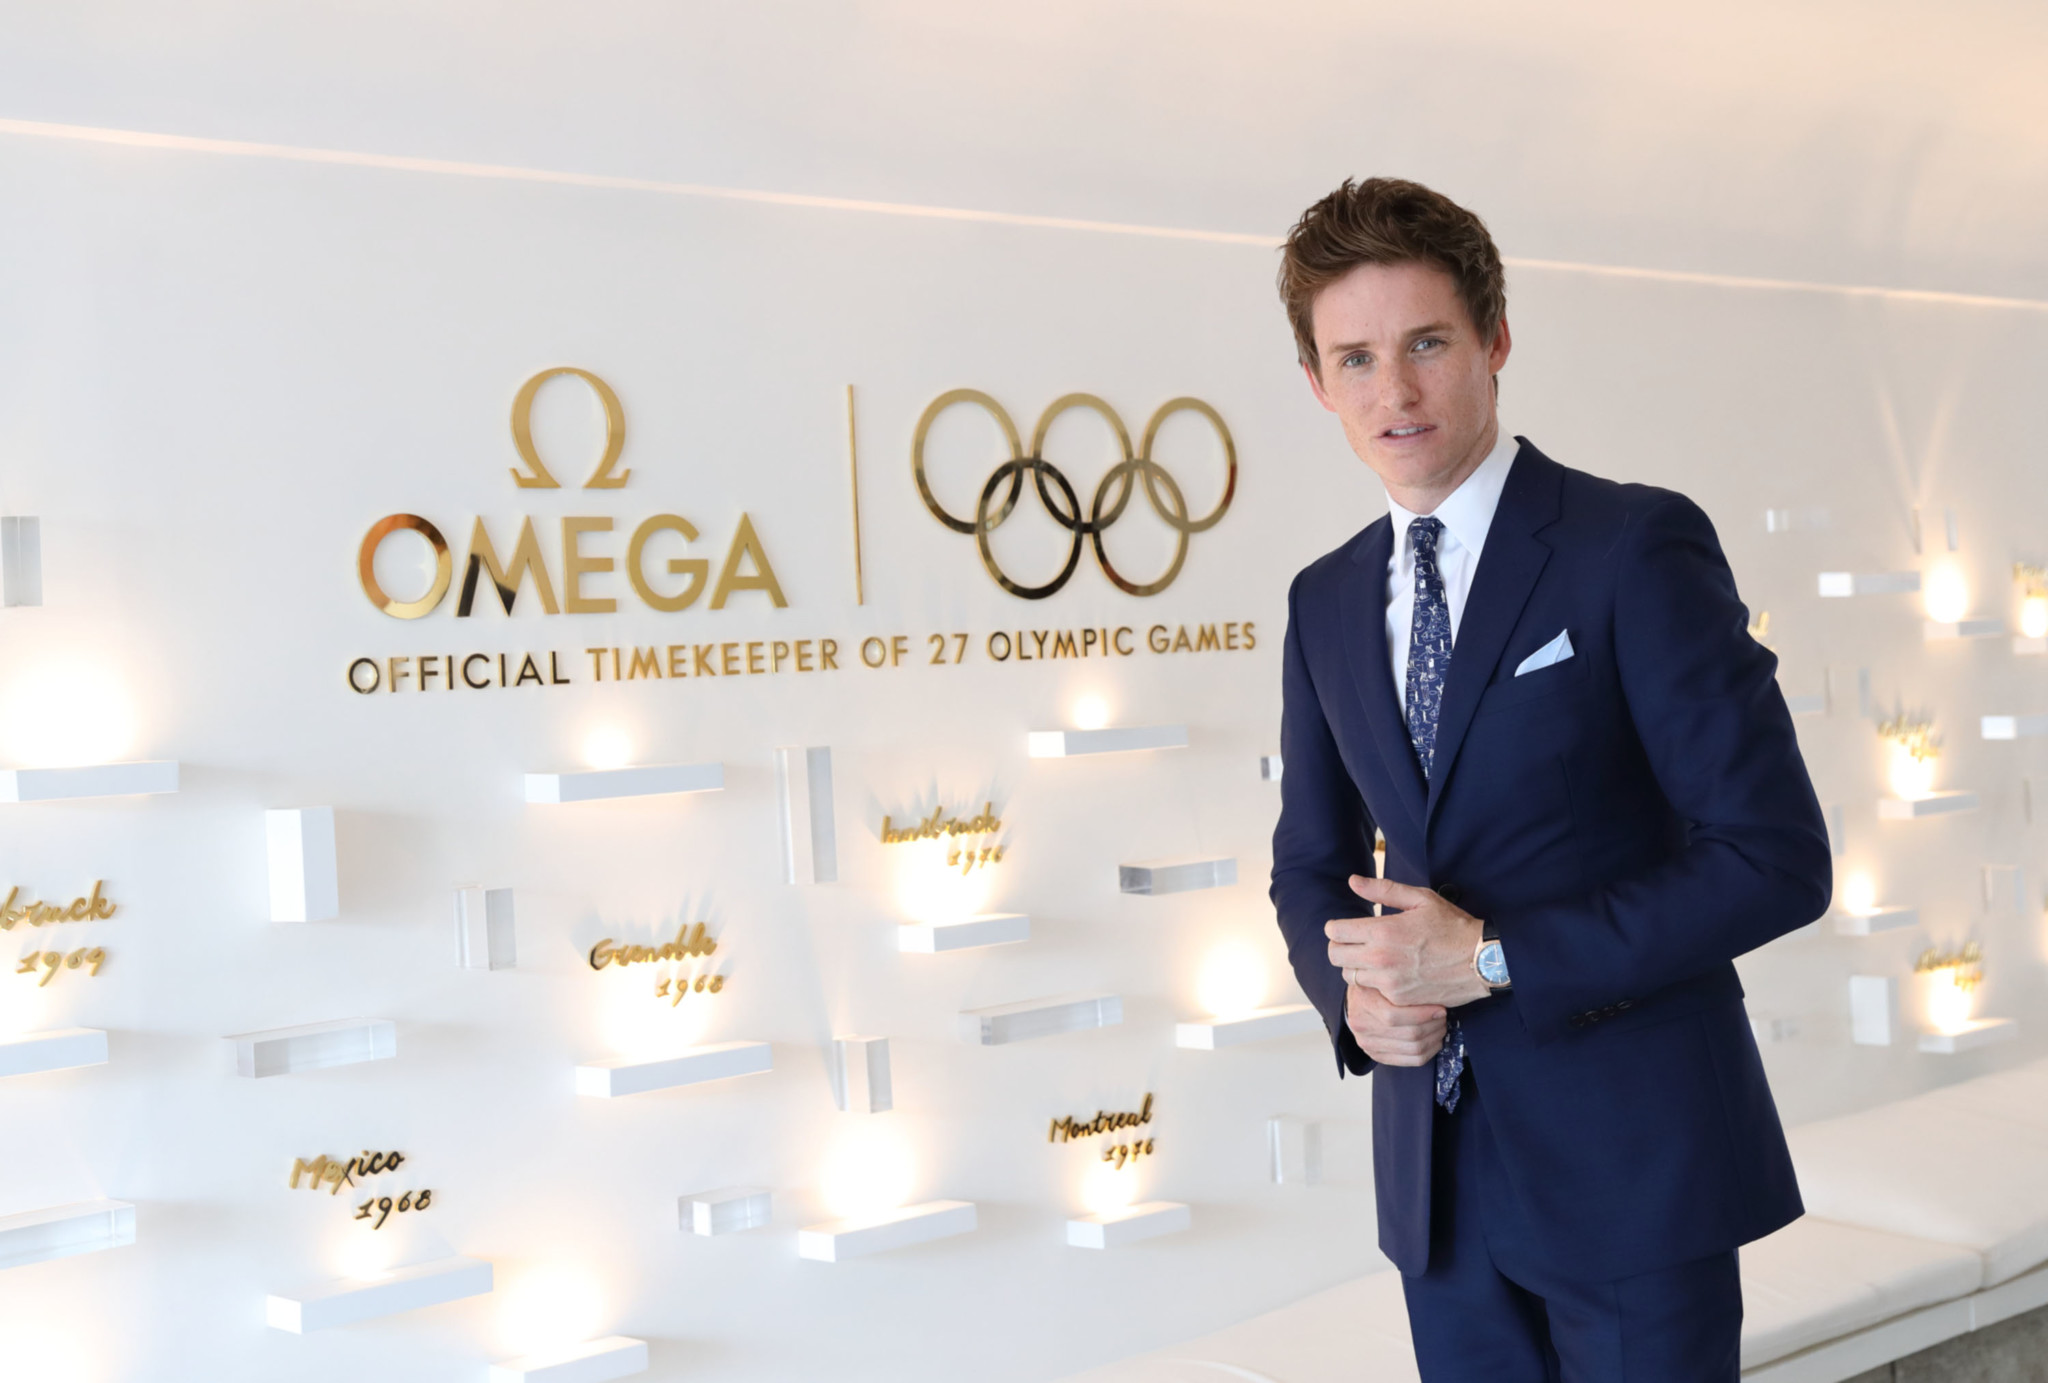 OMEGA House Rio 2016 – Day 1 -Opening Night